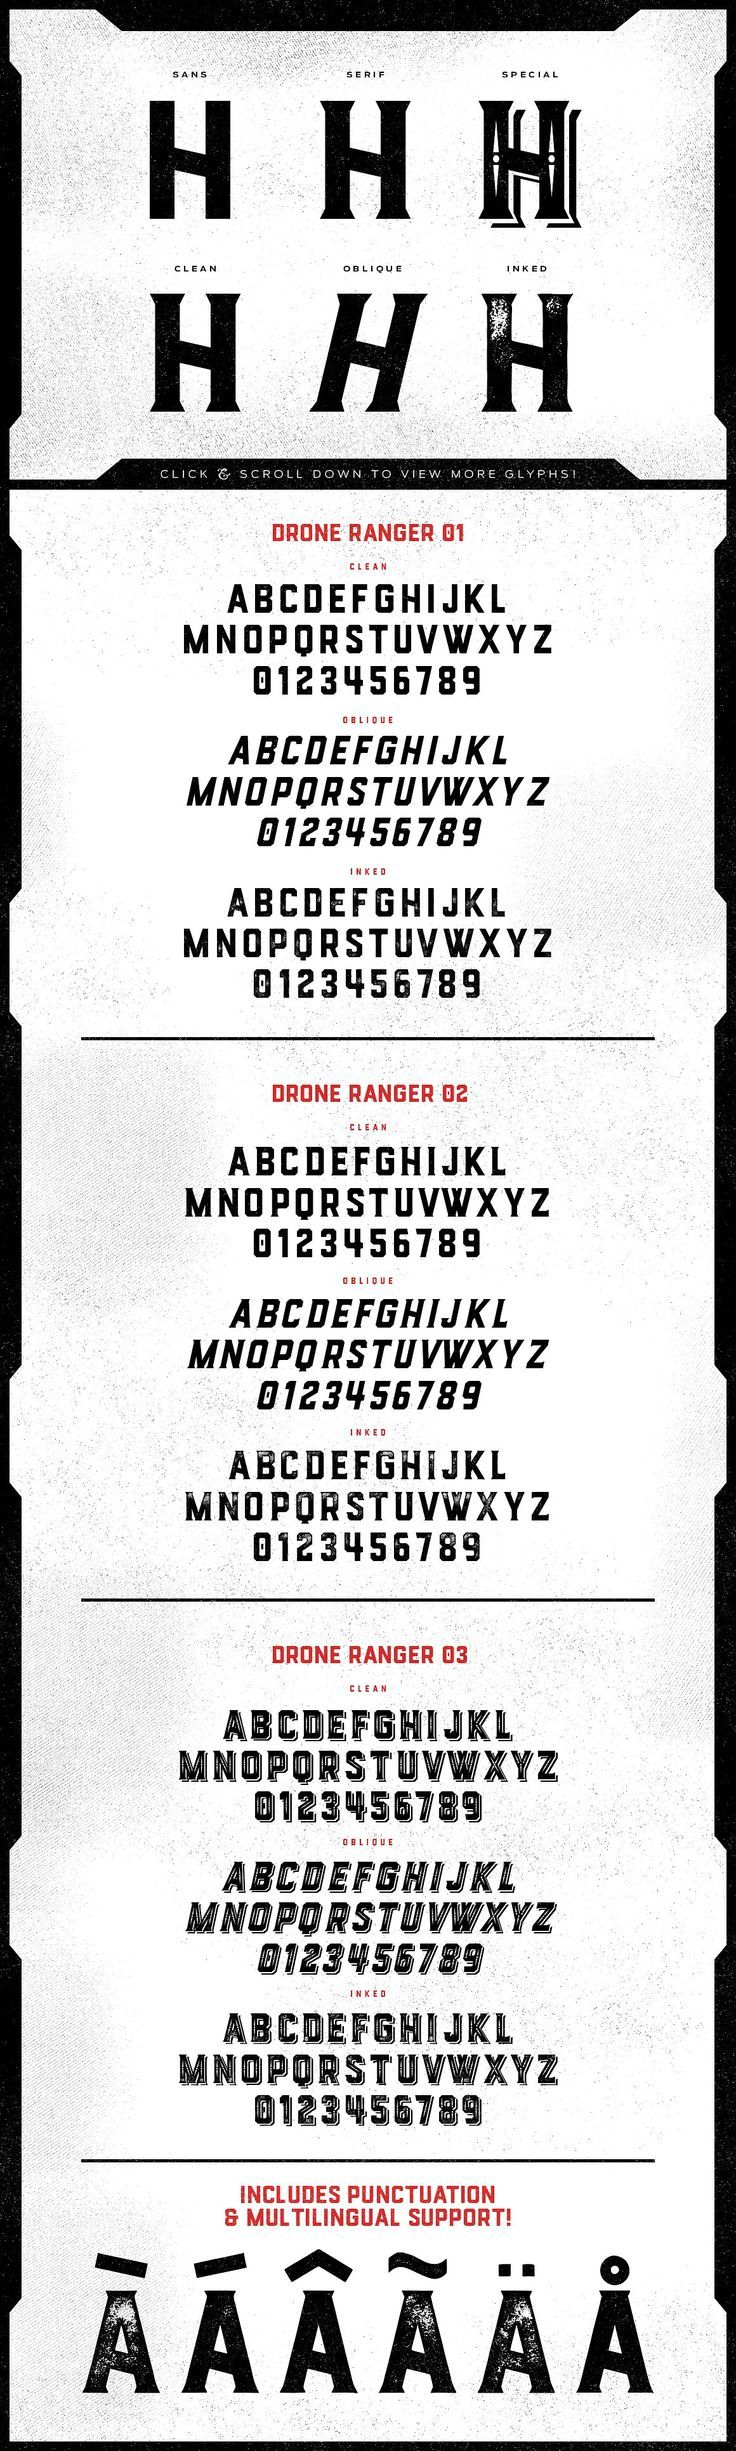 Drone Ranger Display Font -  Drone Ranger is a geometric display family that includes 9 various styles for your designing needs. Included in the family is a Sans version, a Serif version, and a Special Decorative version, and each of these have their own clean, oblique, and inked styles. by Vintage Type Co. $18 #typeface #affiliatelink